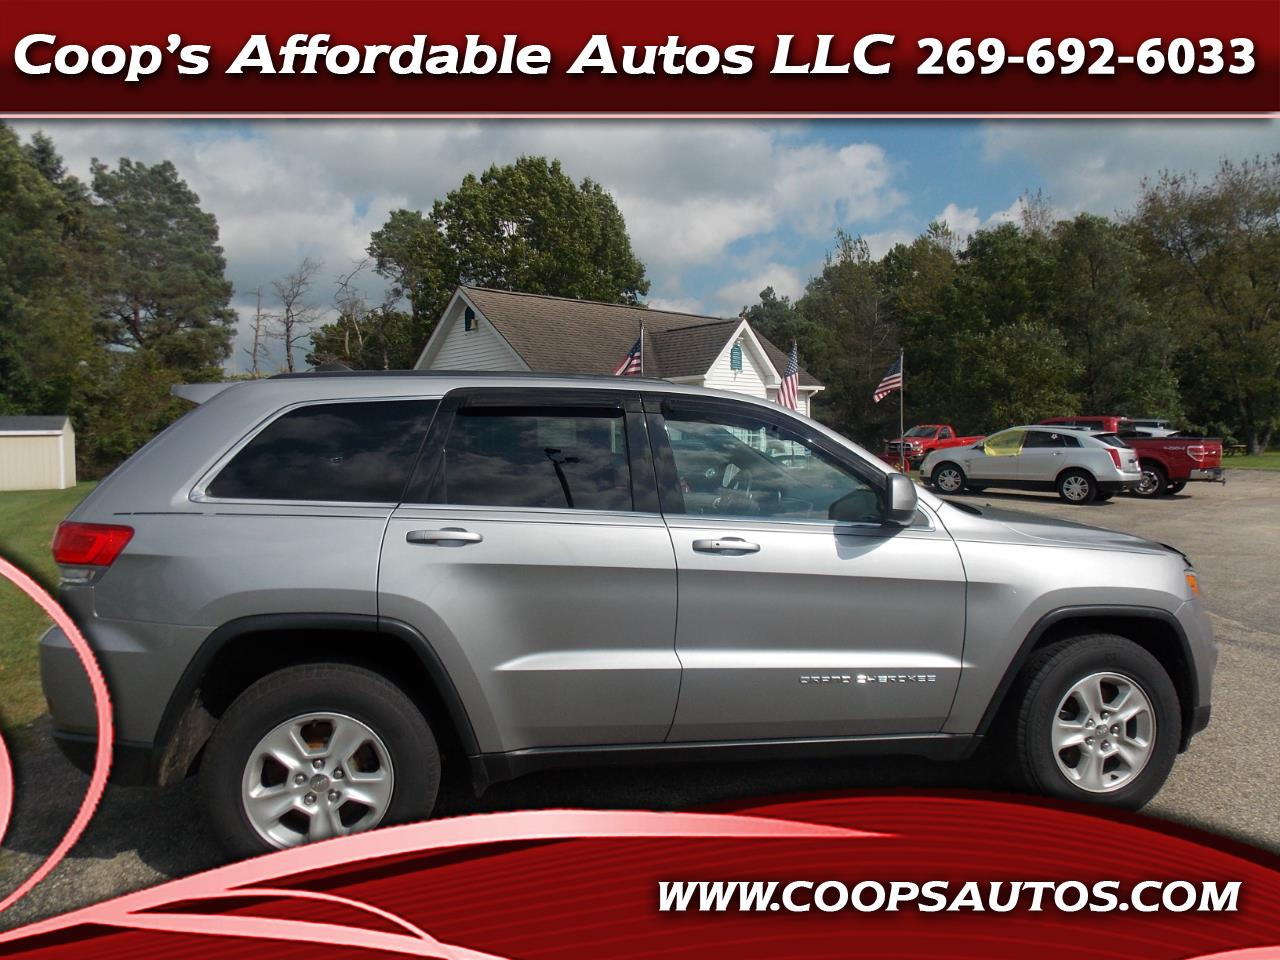 2014 Jeep Grand Cherokee Laredo 4WD